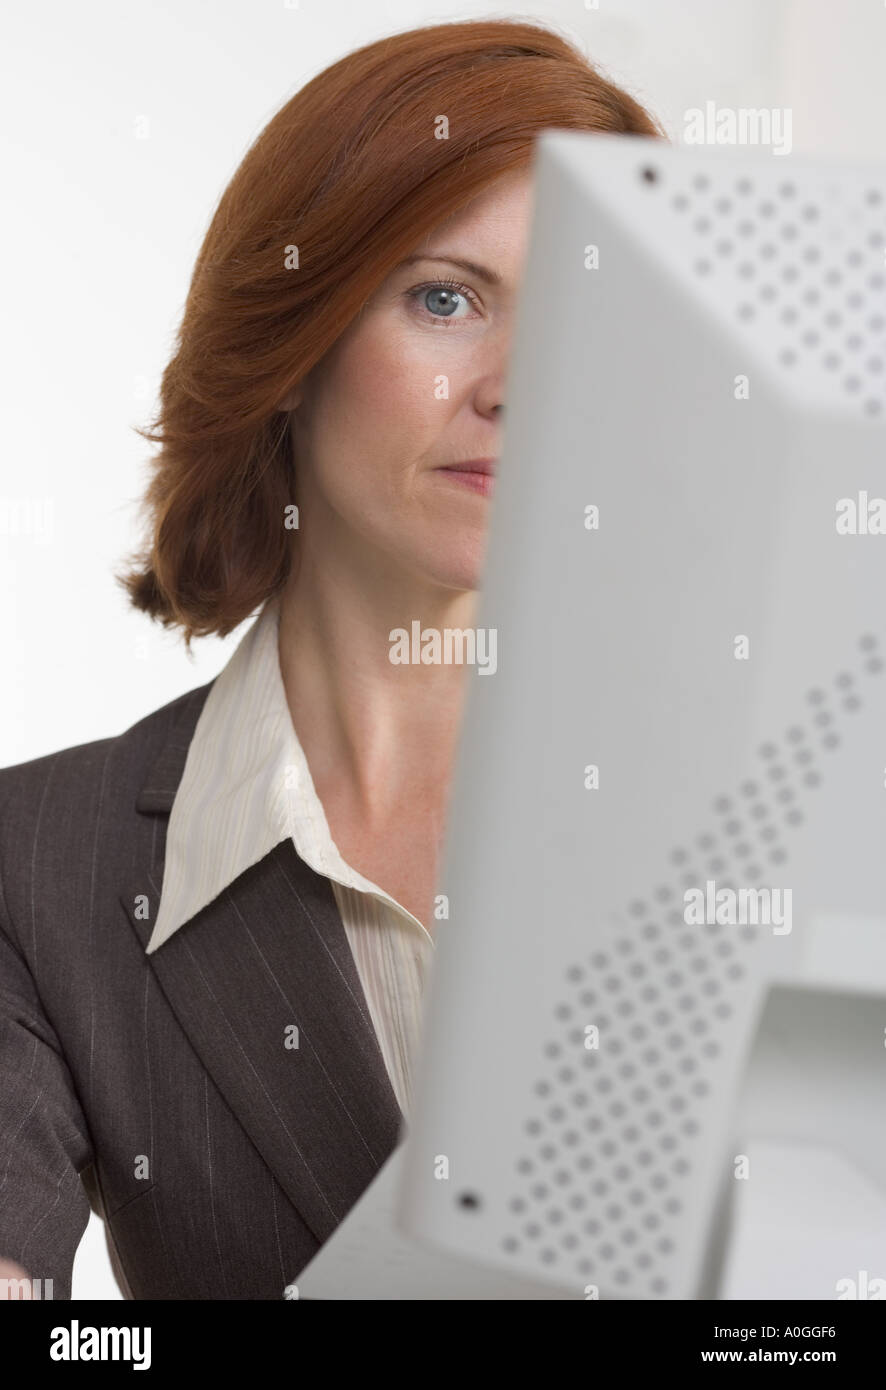 Businesswoman with face hidden by computer - Stock Image